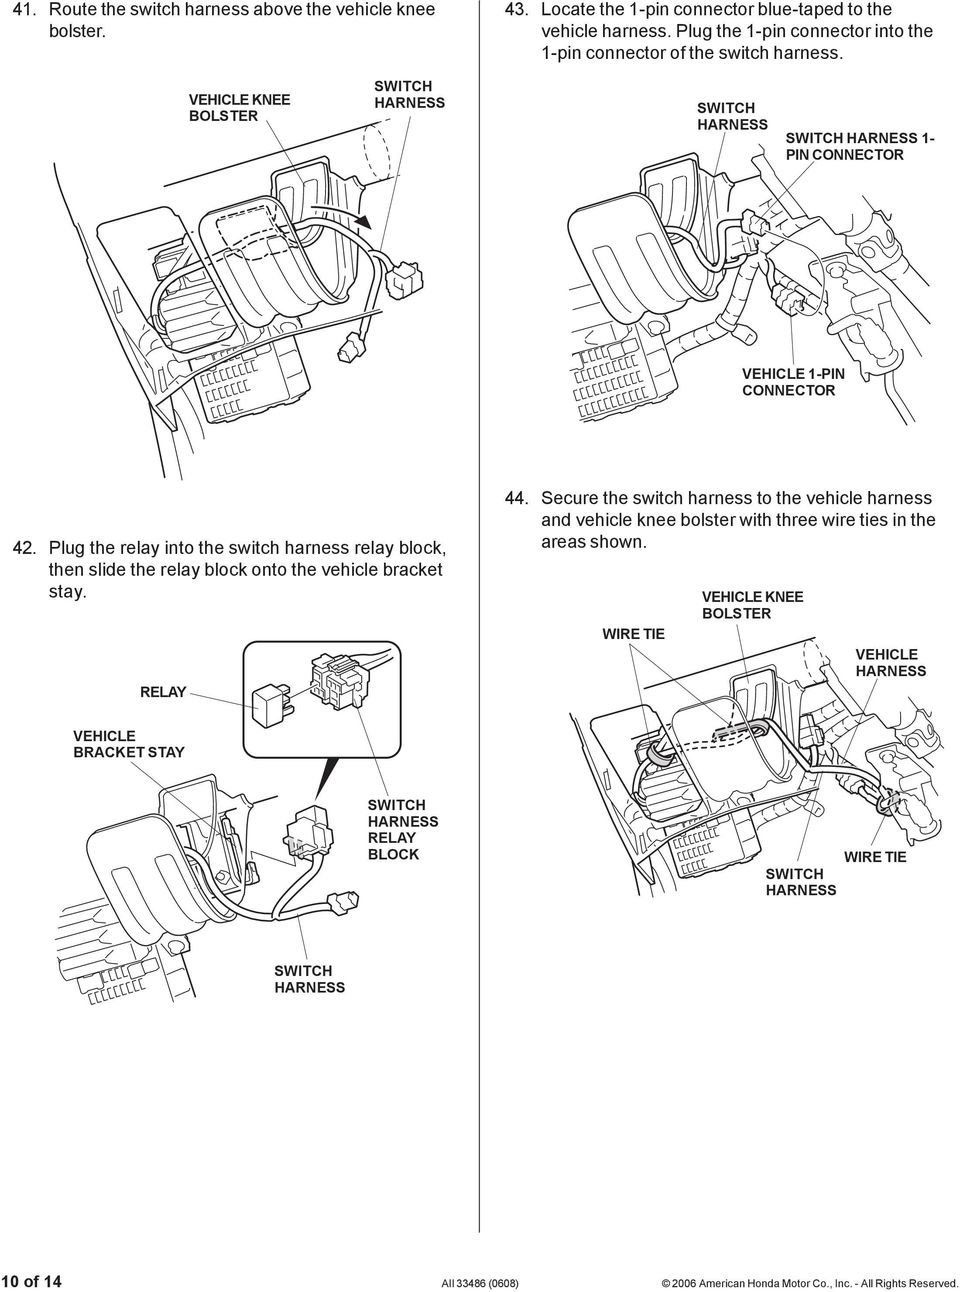 Installation Instructions Pdf Rib Harness Clip Wiring Plug The Relay Into Switch Block Then Slide Onto